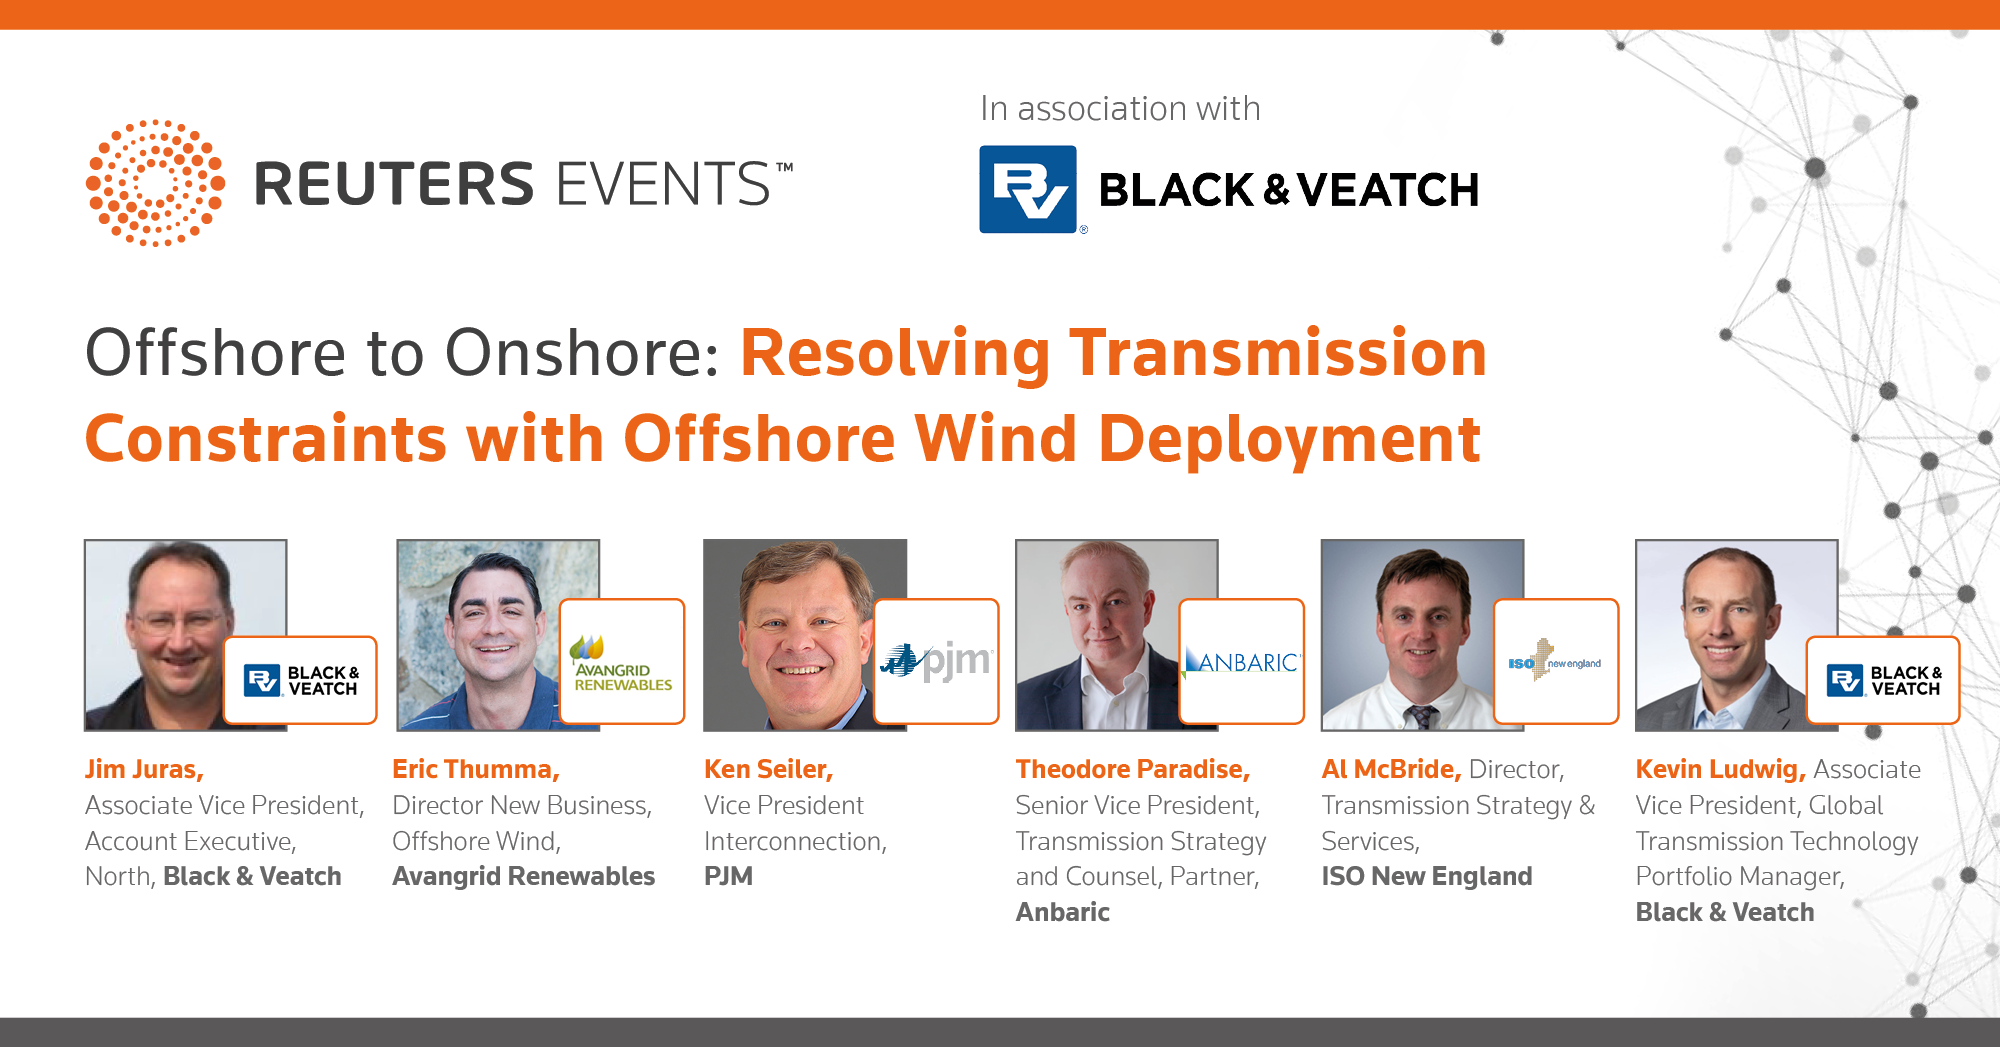 Offshore to Onshore: Resolving Transmission Constraints with Offshore Wind Deployment